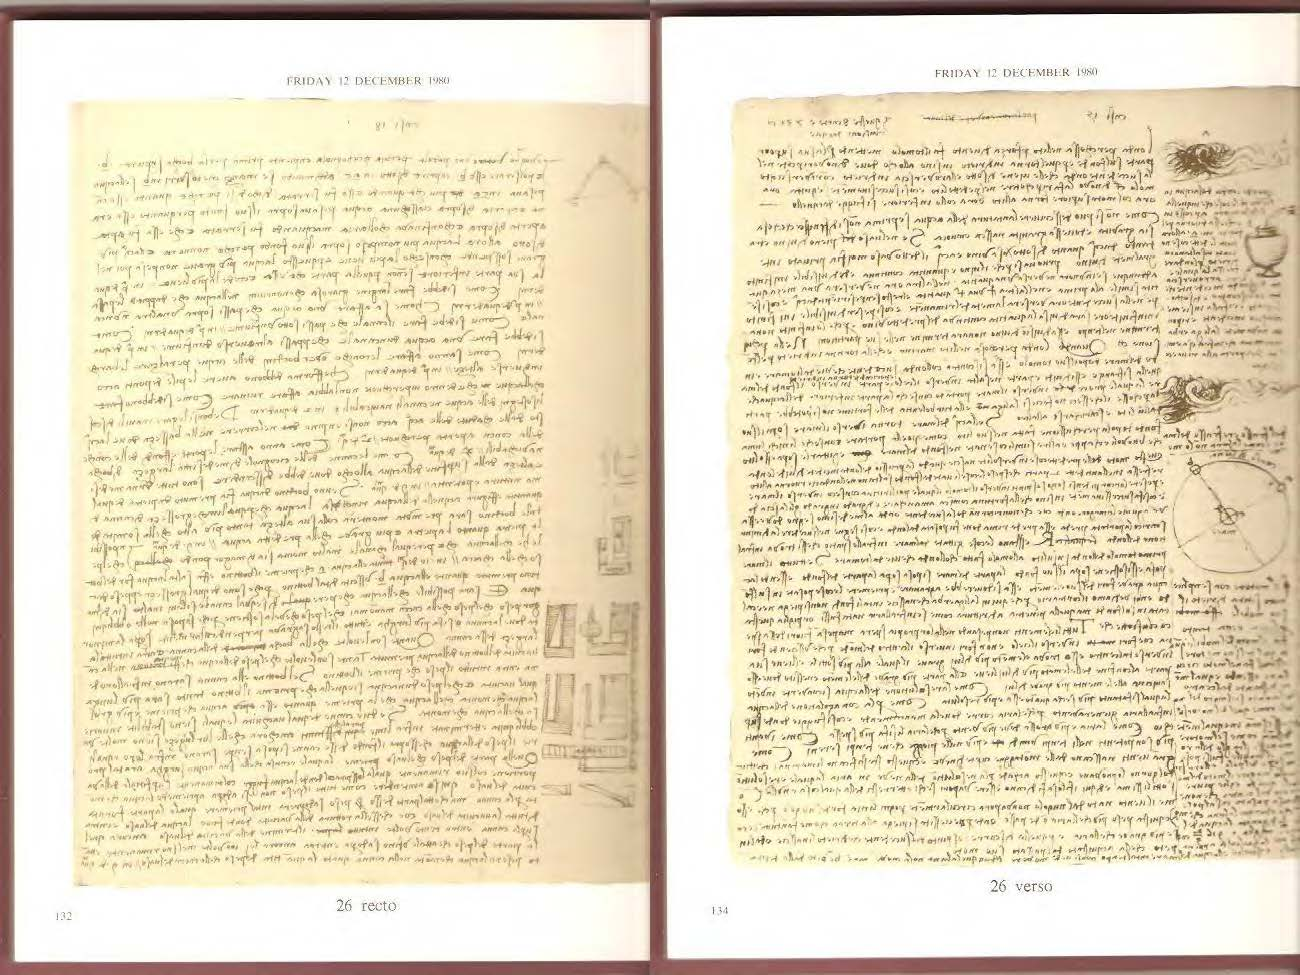 Codex_Leicester_Page_26_Image_0001.jpg